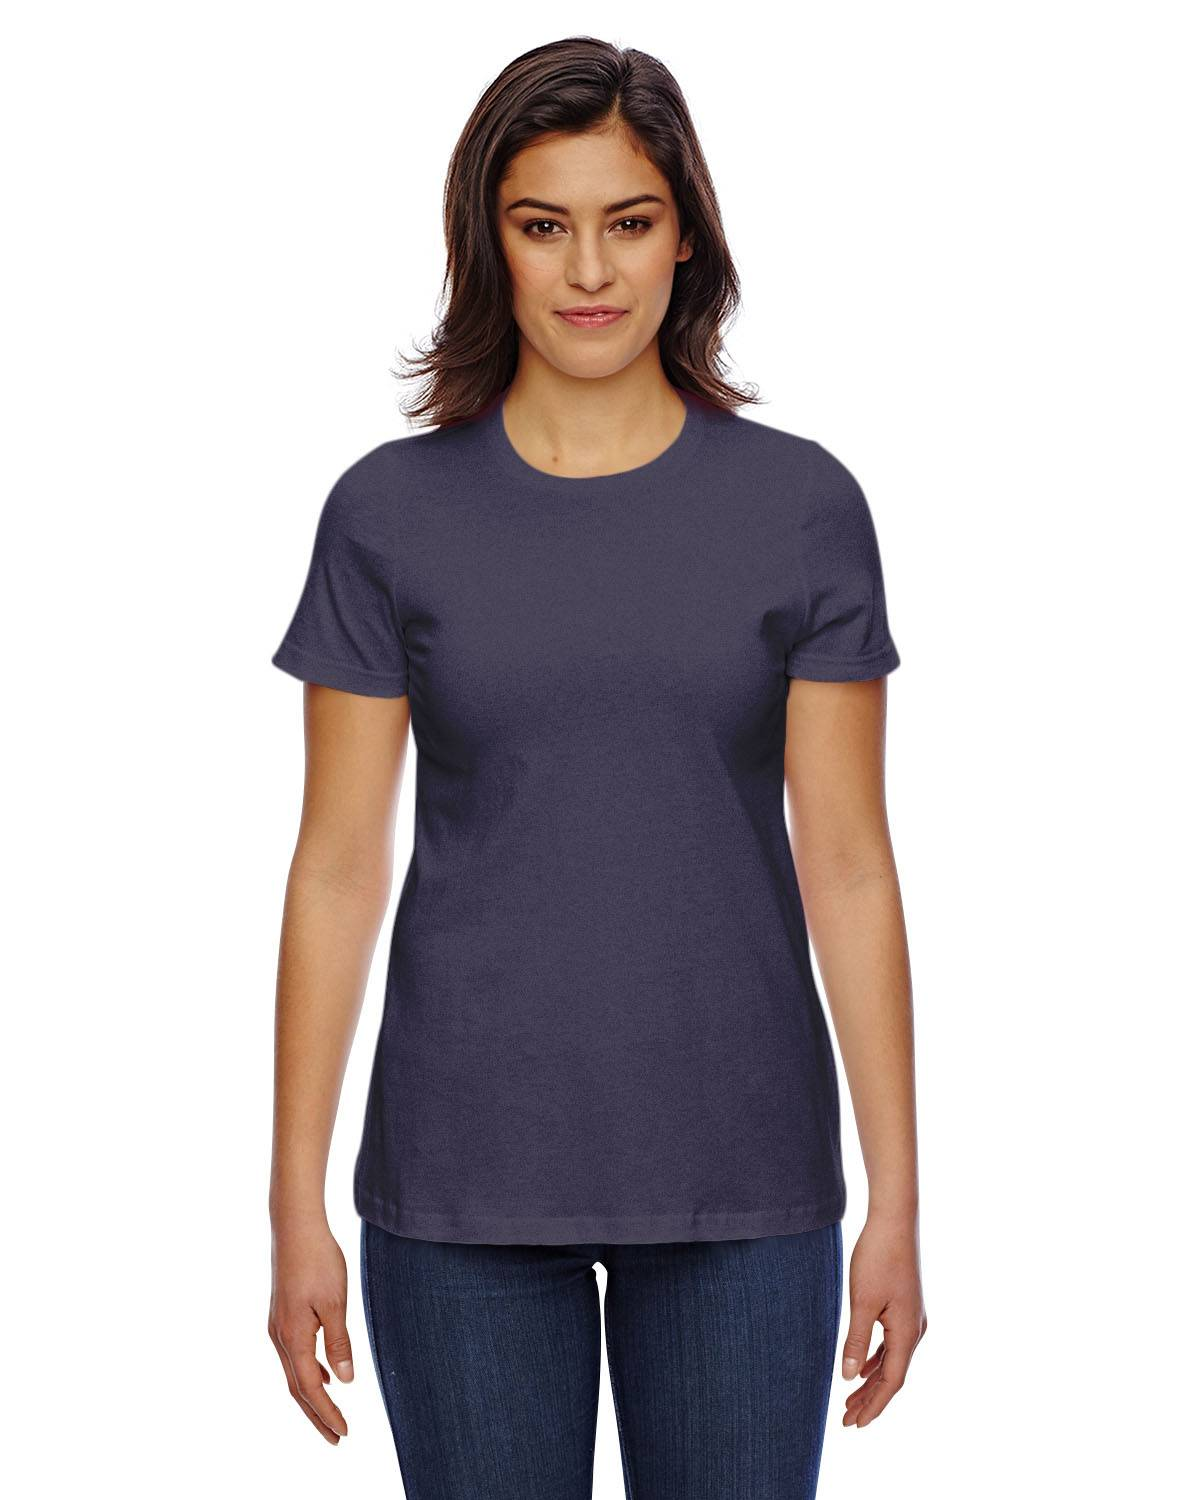 American Apparel Ladies' Classic T-Shirt | 23215W